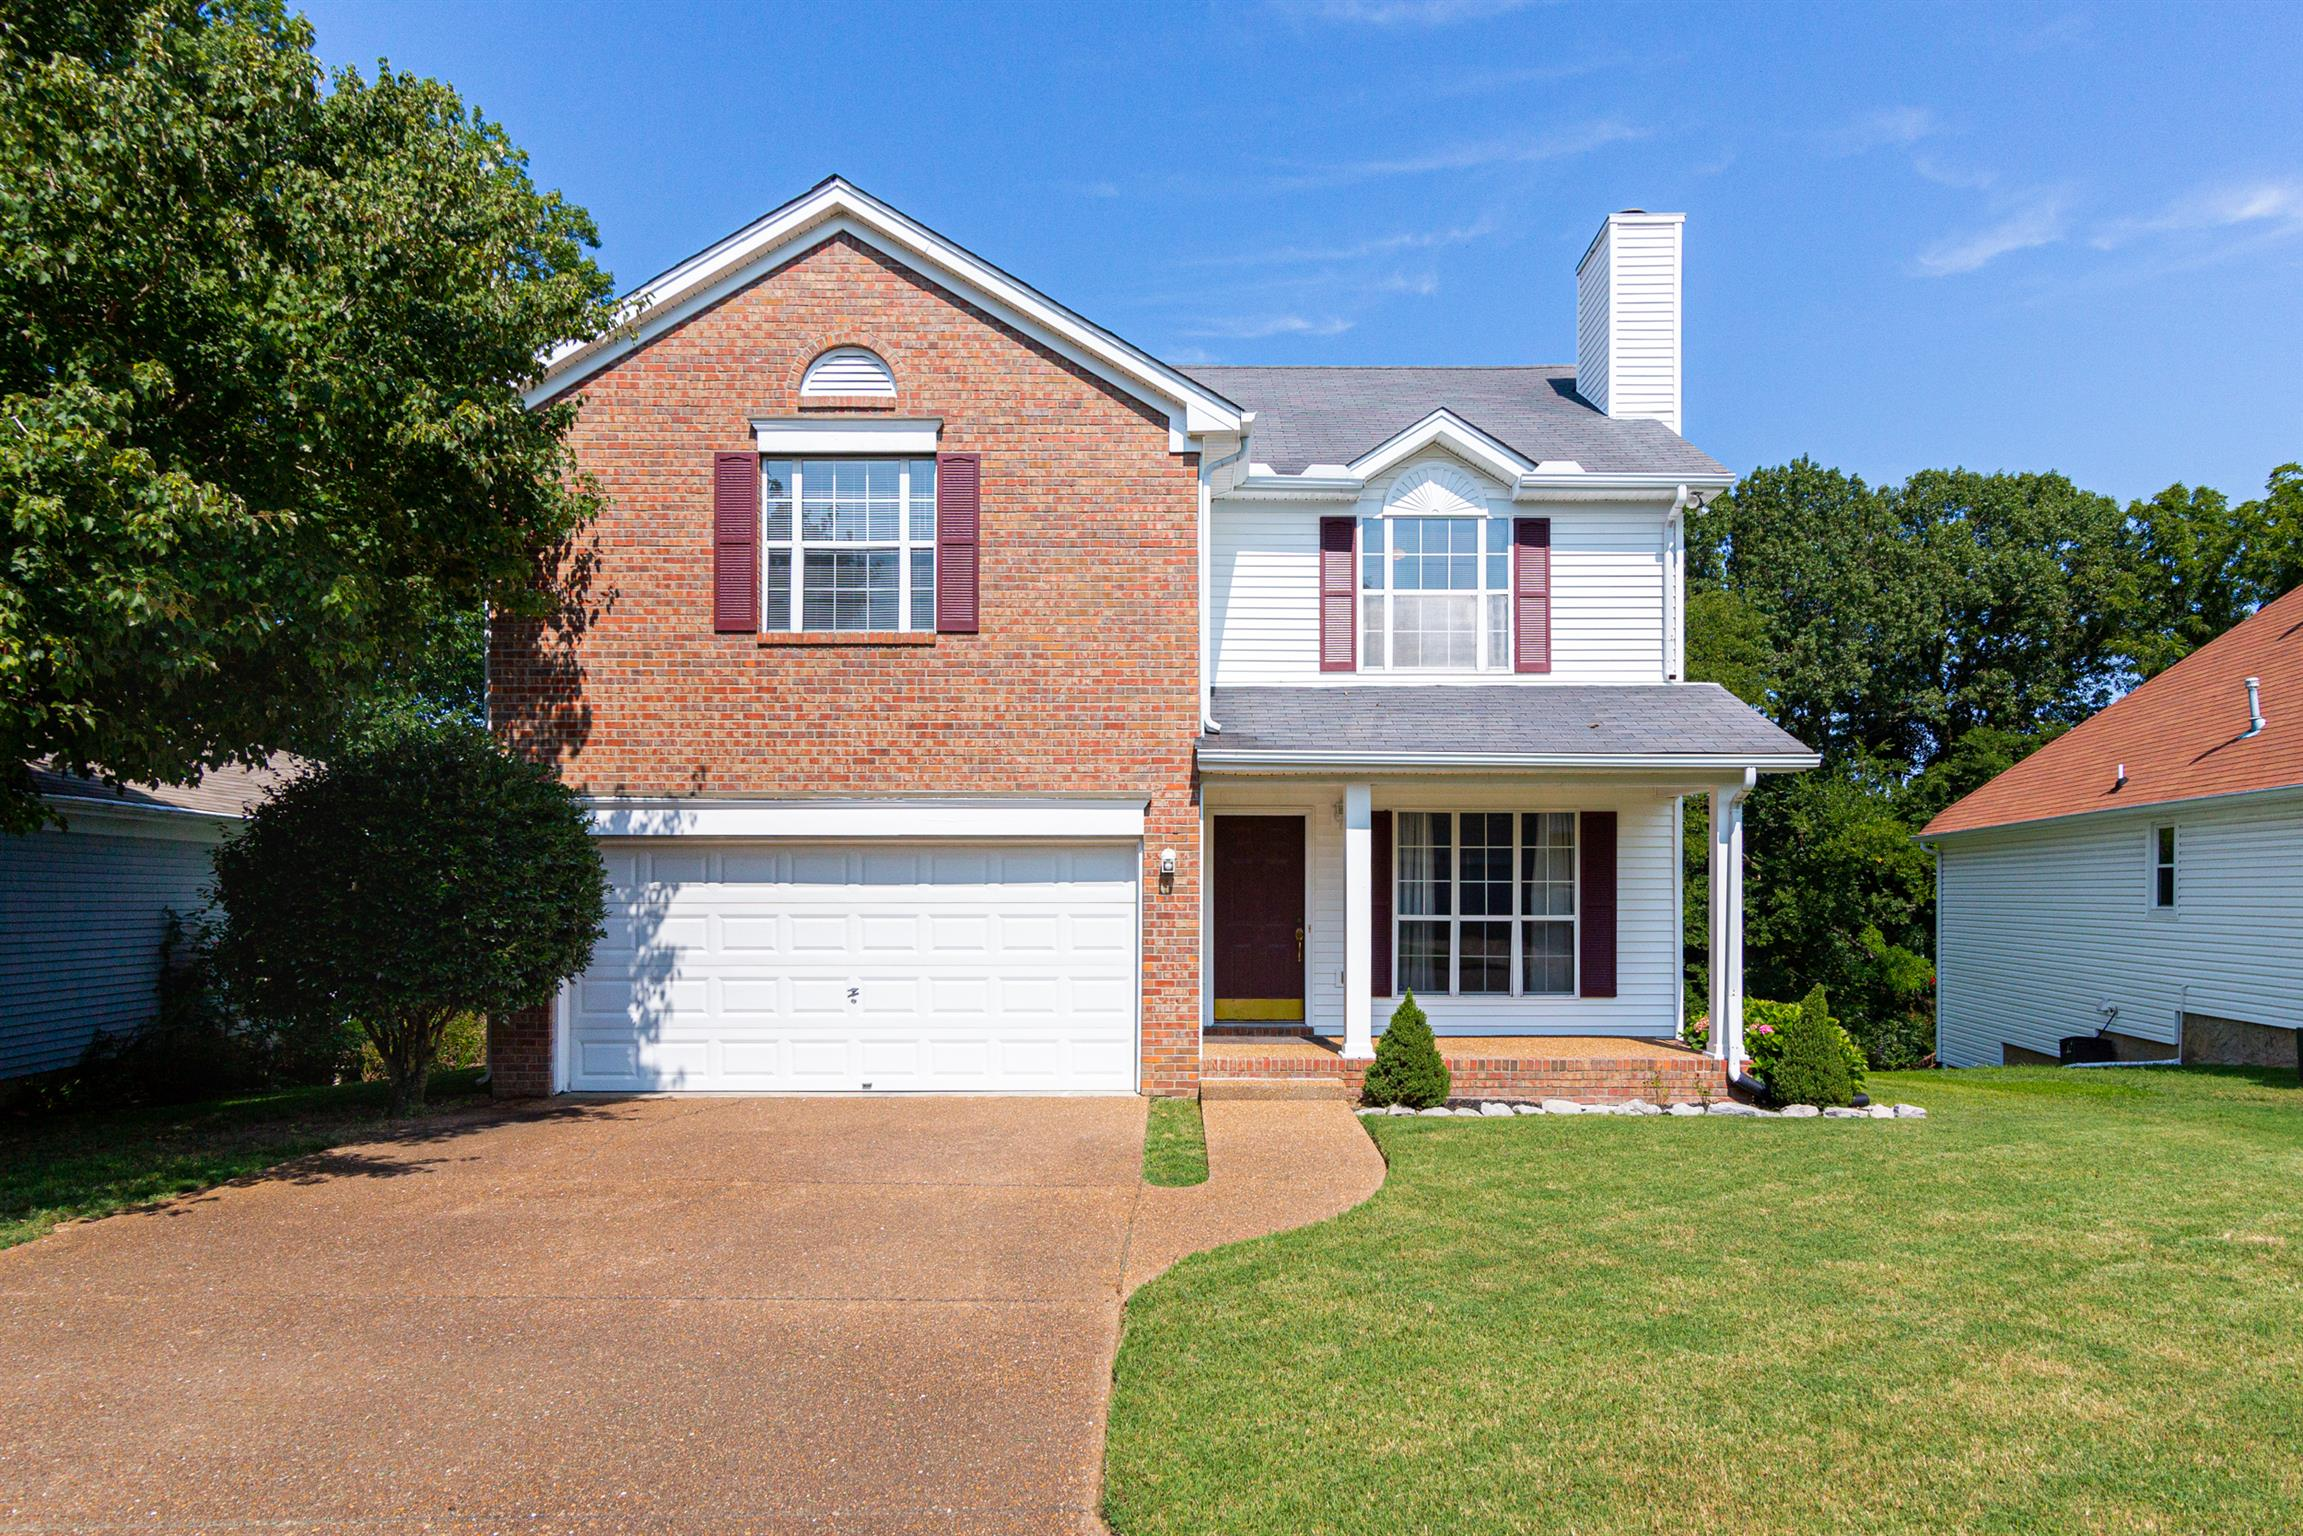 1720 Aaronwood Dr, Old Hickory, TN 37138 - Old Hickory, TN real estate listing